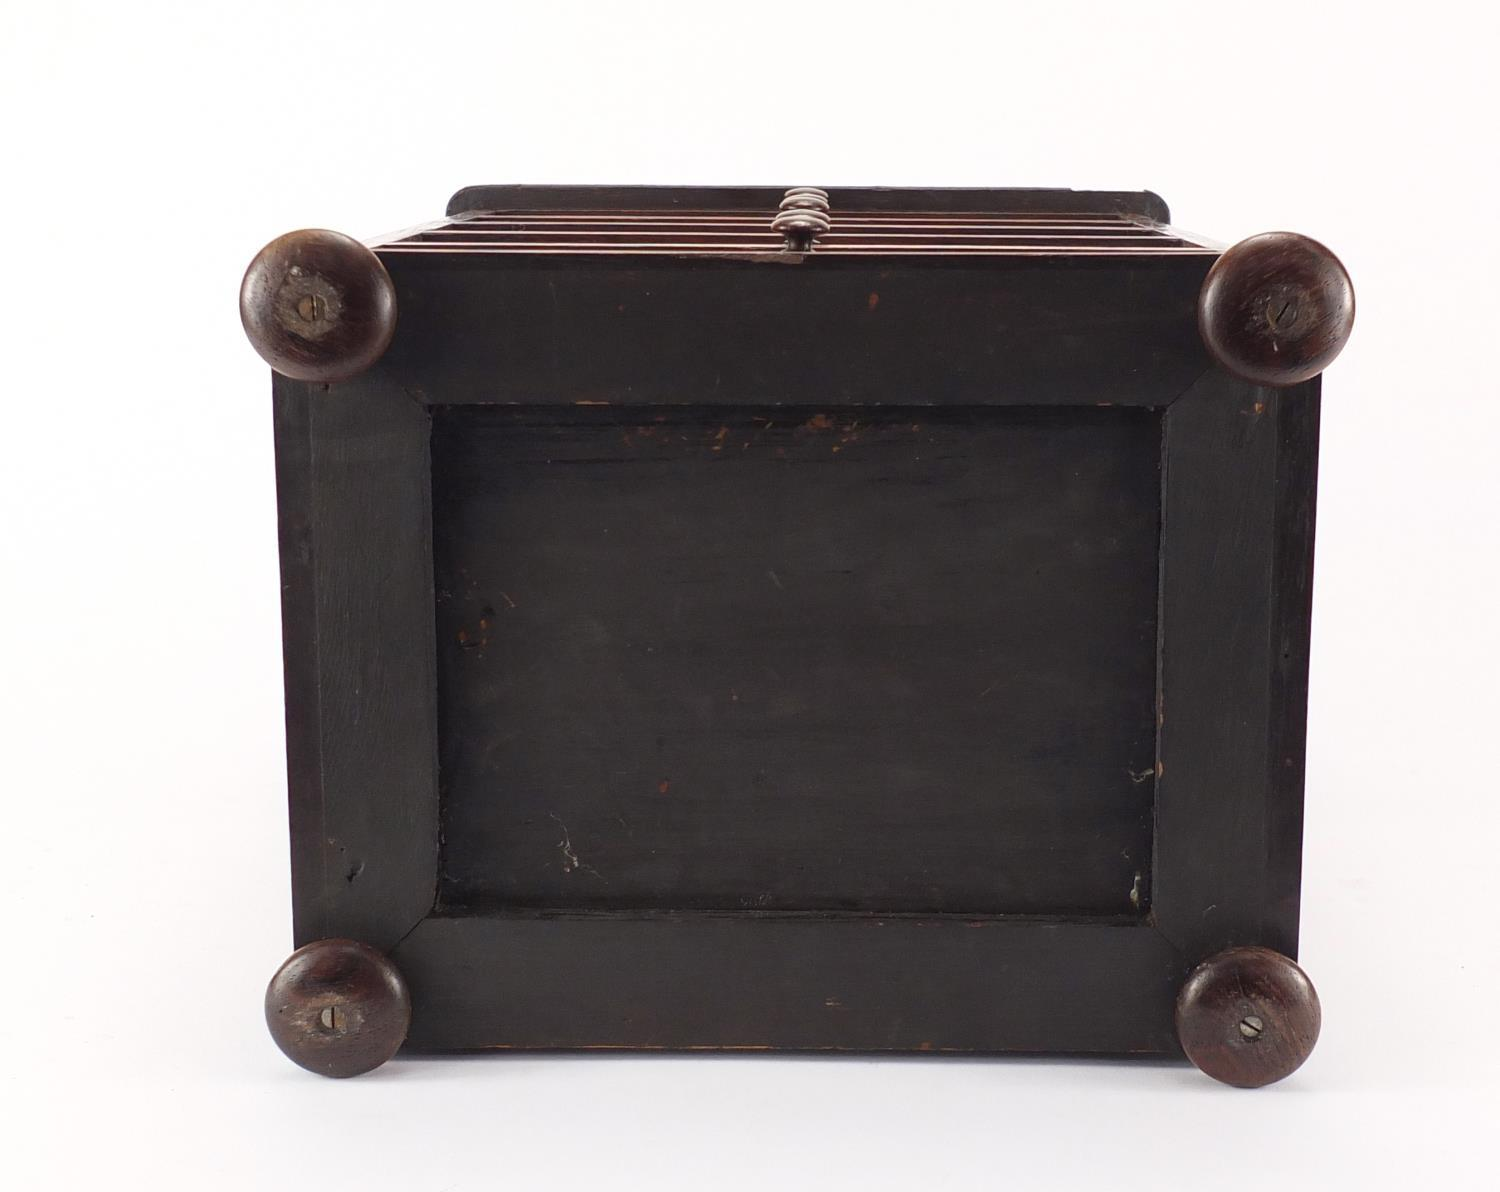 Lot 40 - Victorian rosewood five drawer apprentice chest with oak inlay, 37.5cm H x 27.5cm W x 21cm D :For